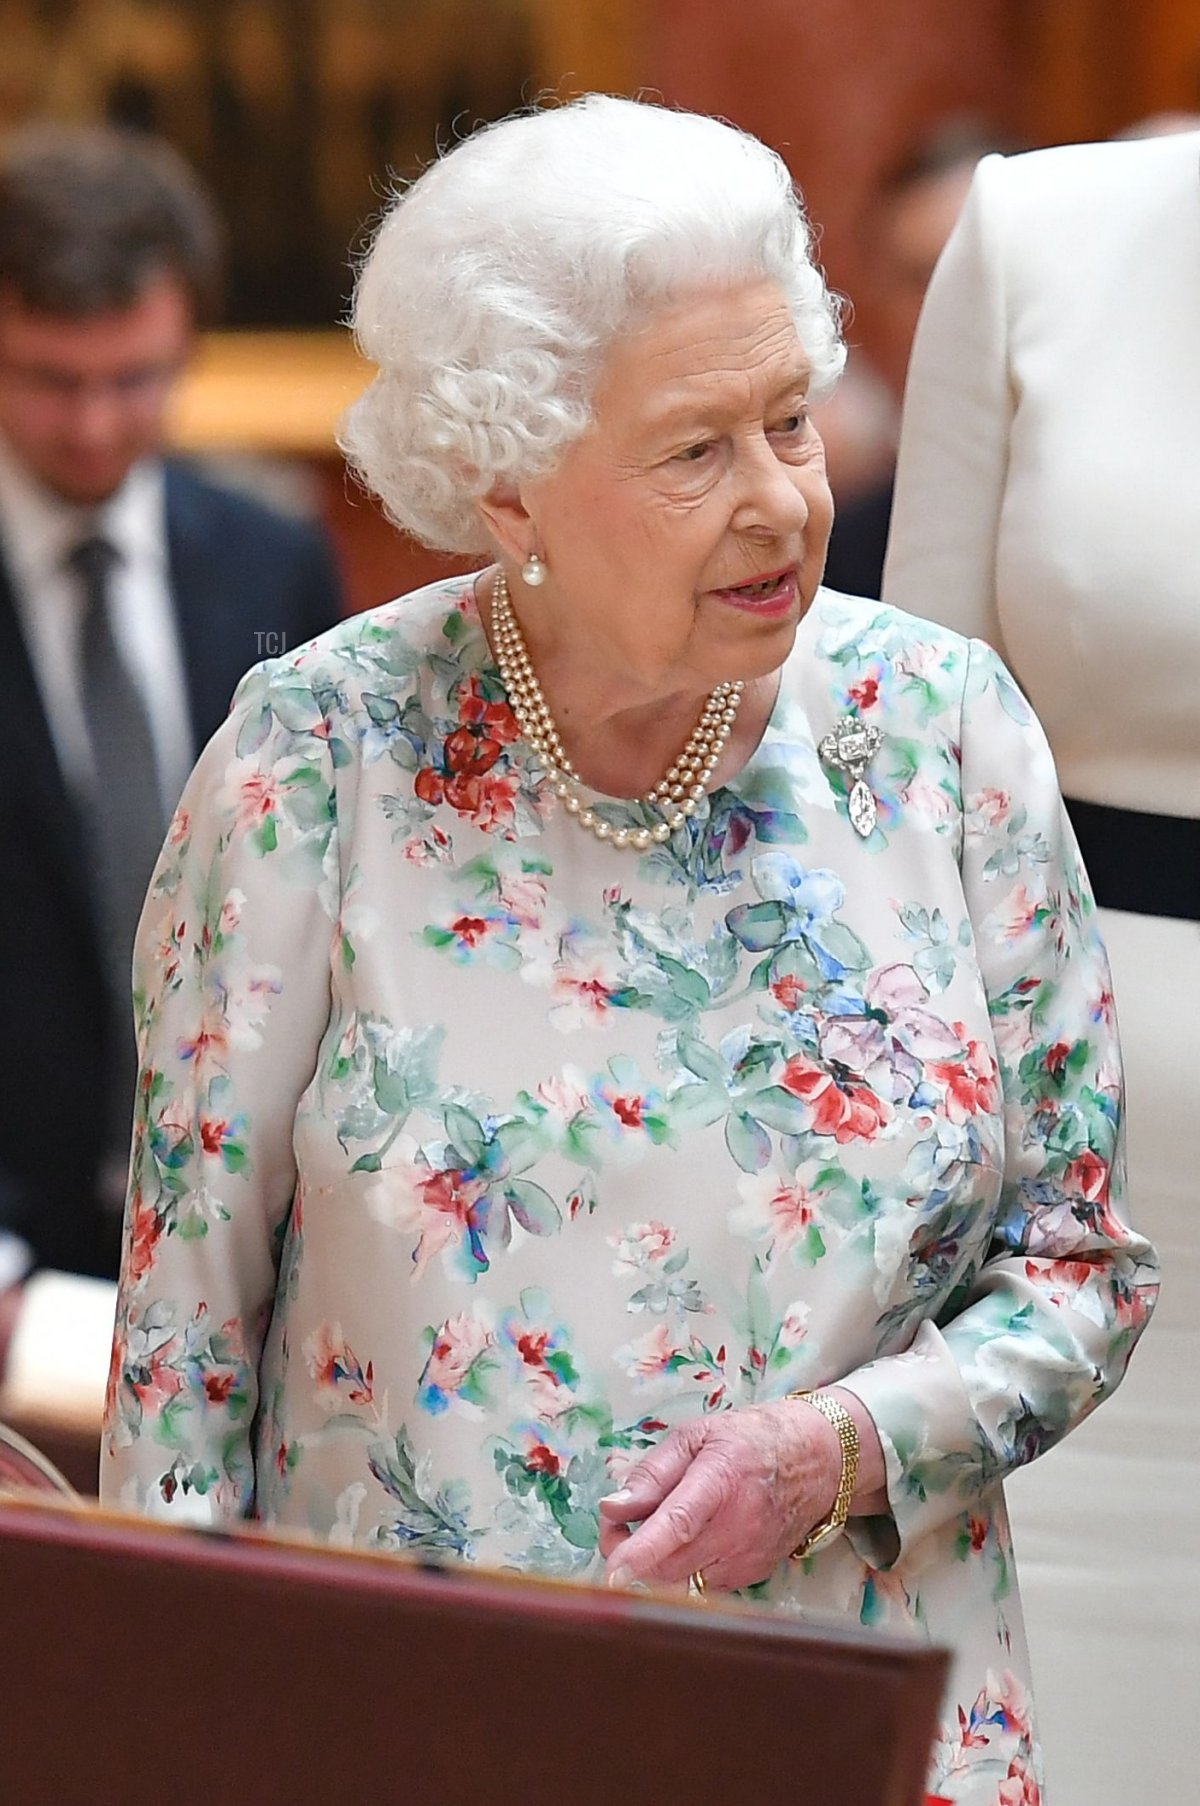 Britain's Queen Elizabeth II (L) views a display of US items of the Royal collection with US President Donald Trump and US First Lady Melania Trump at Buckingham palace at Buckingham Palace in central London on June 3, 2019, on the first day of their three-day State Visit to the UK